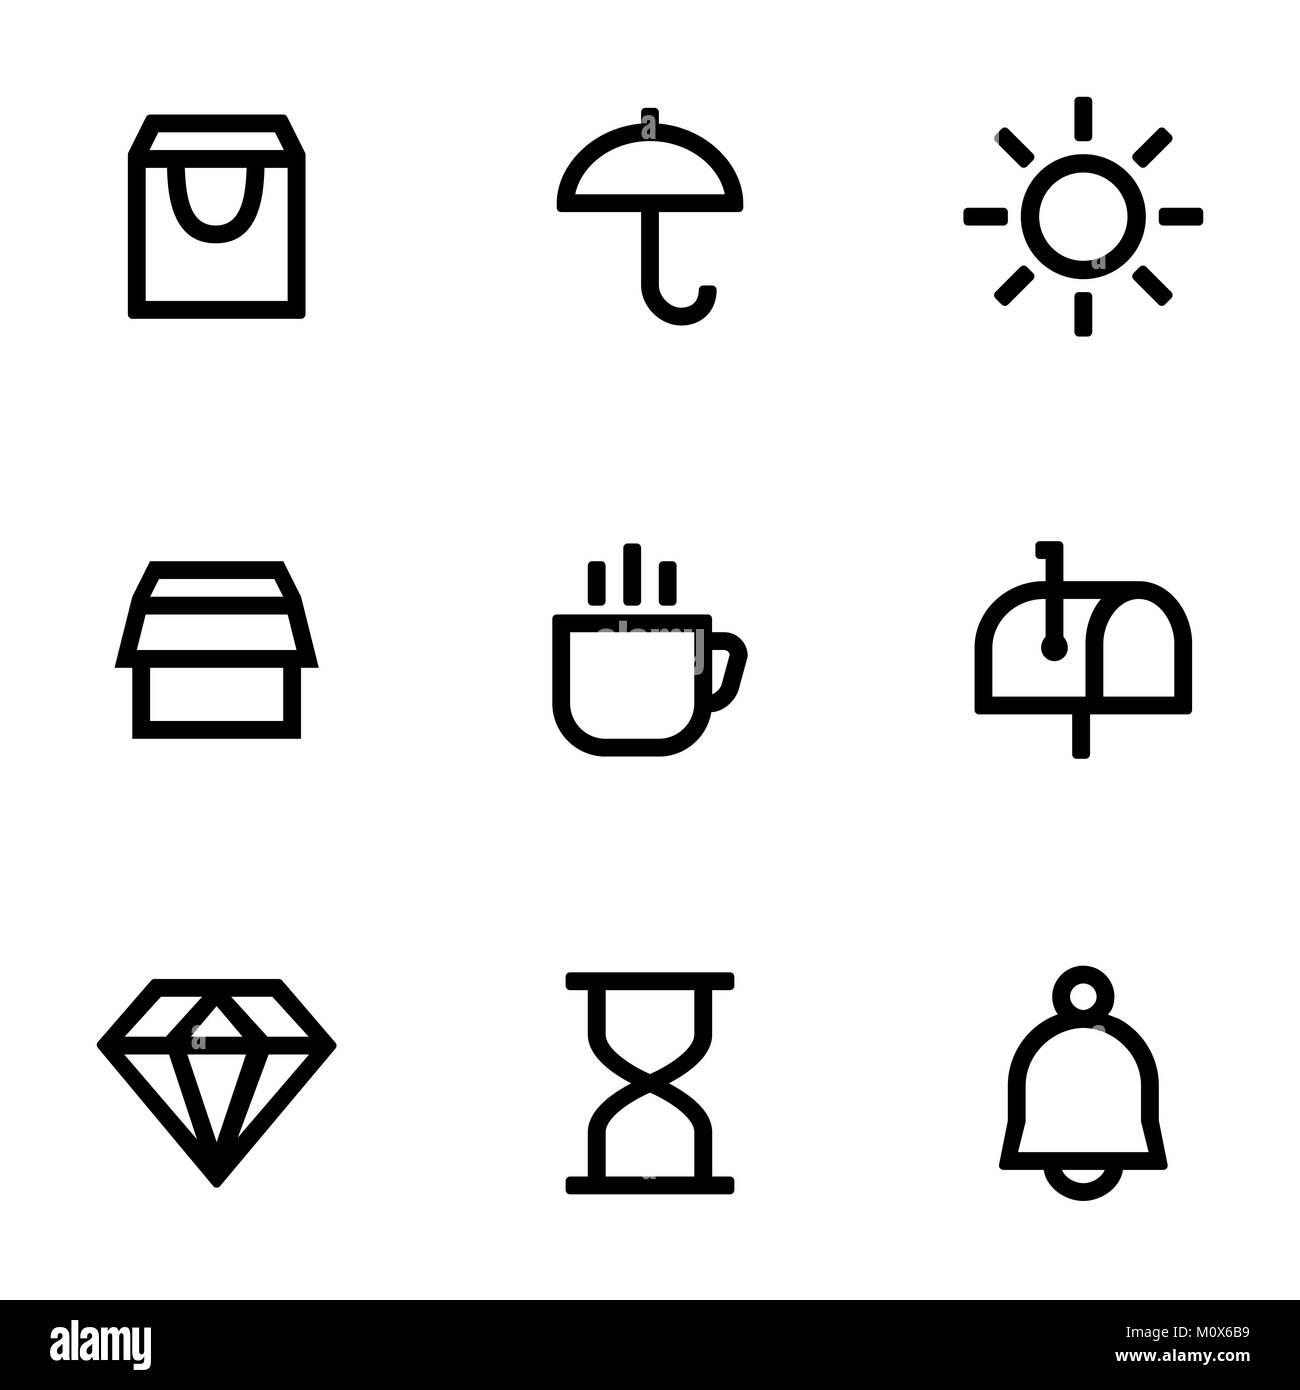 Set of icons for simple flat style ui design. - Stock Image